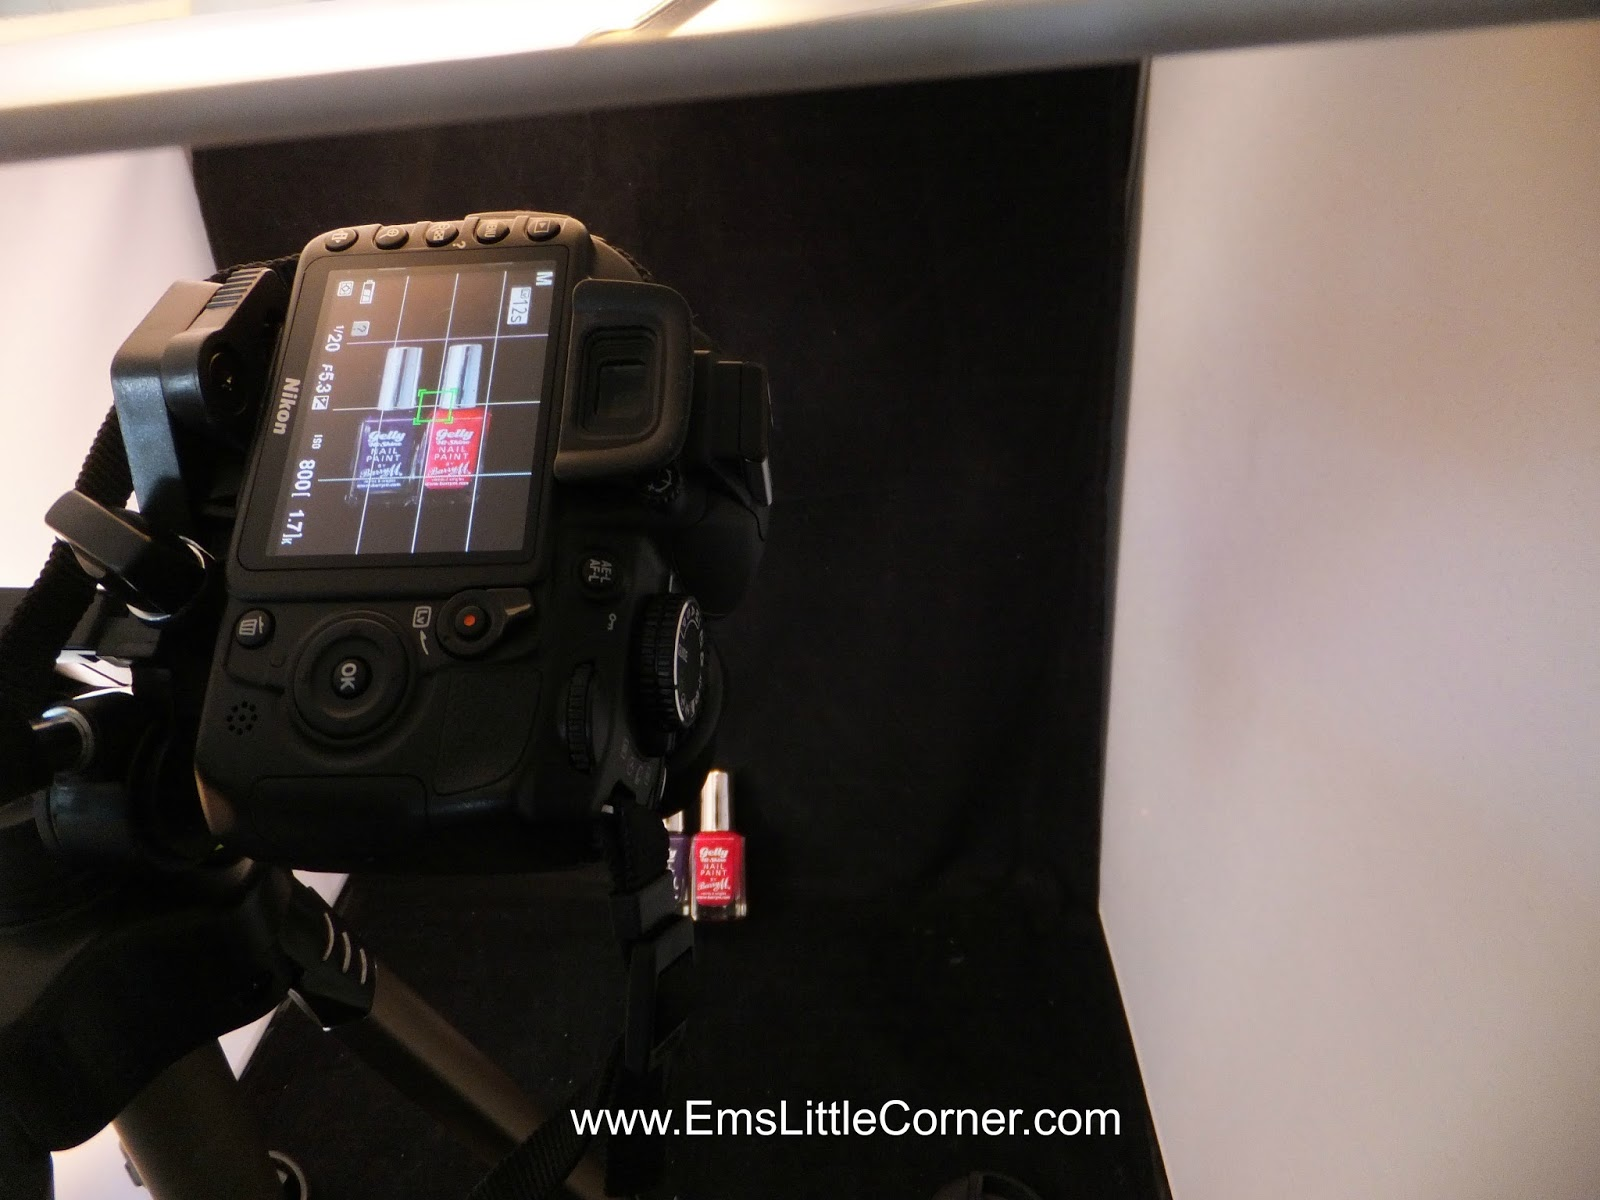 http://www.emslittlecorner.com/2013/10/my-photography-set-up-and-tips.html